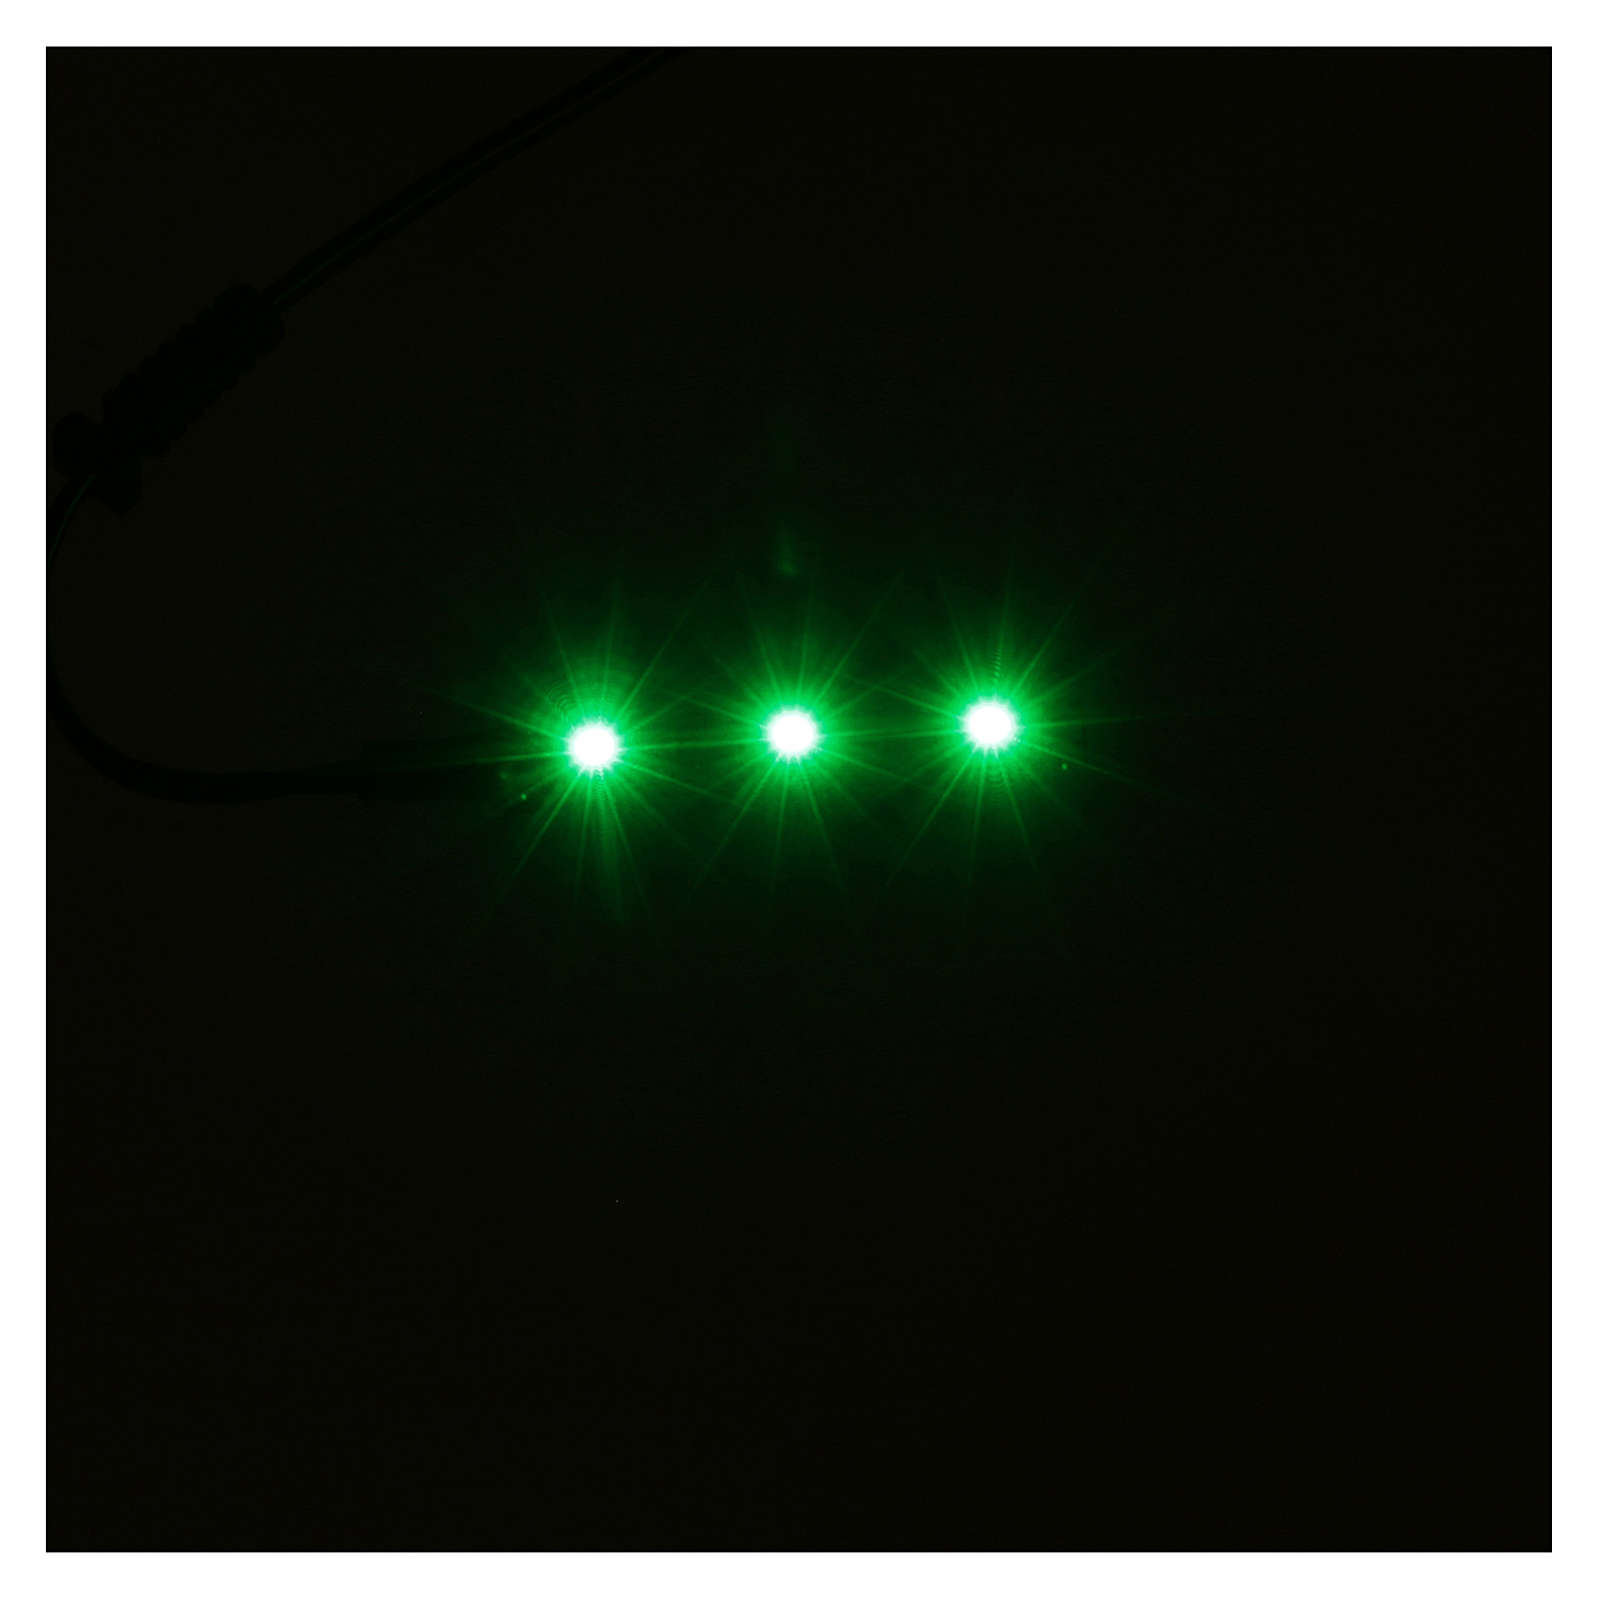 LED strip with 3 lights 0,8x4cm, green for Frisalight 4